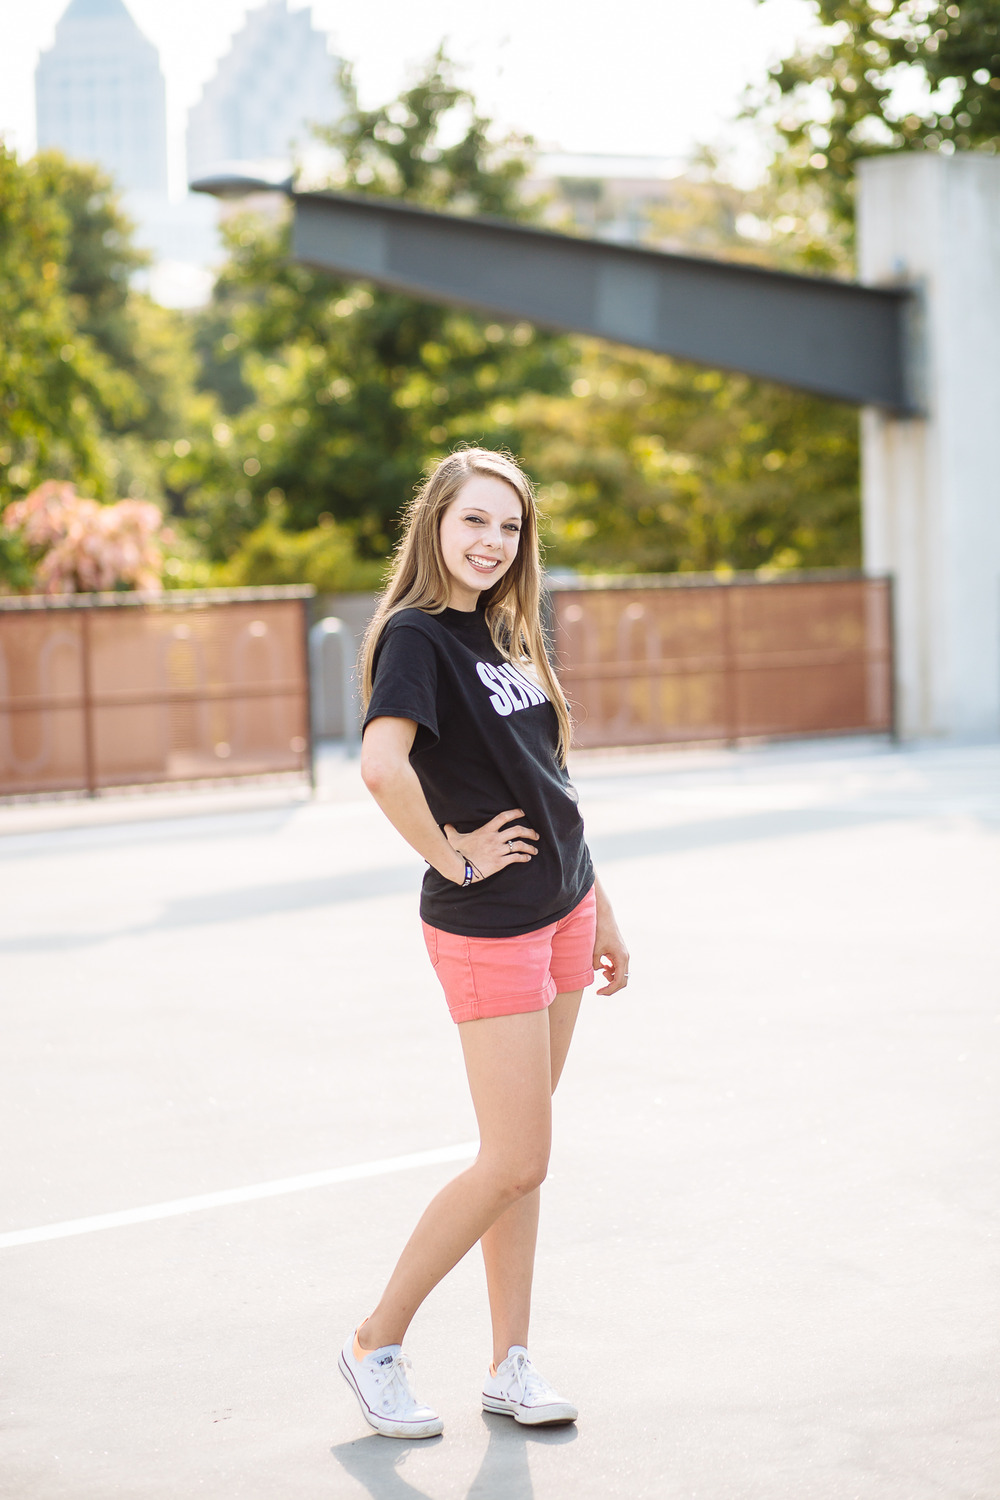 piedmont_park_atlanta_atl_photo_senior_portaits_erin_spruell_photography_1